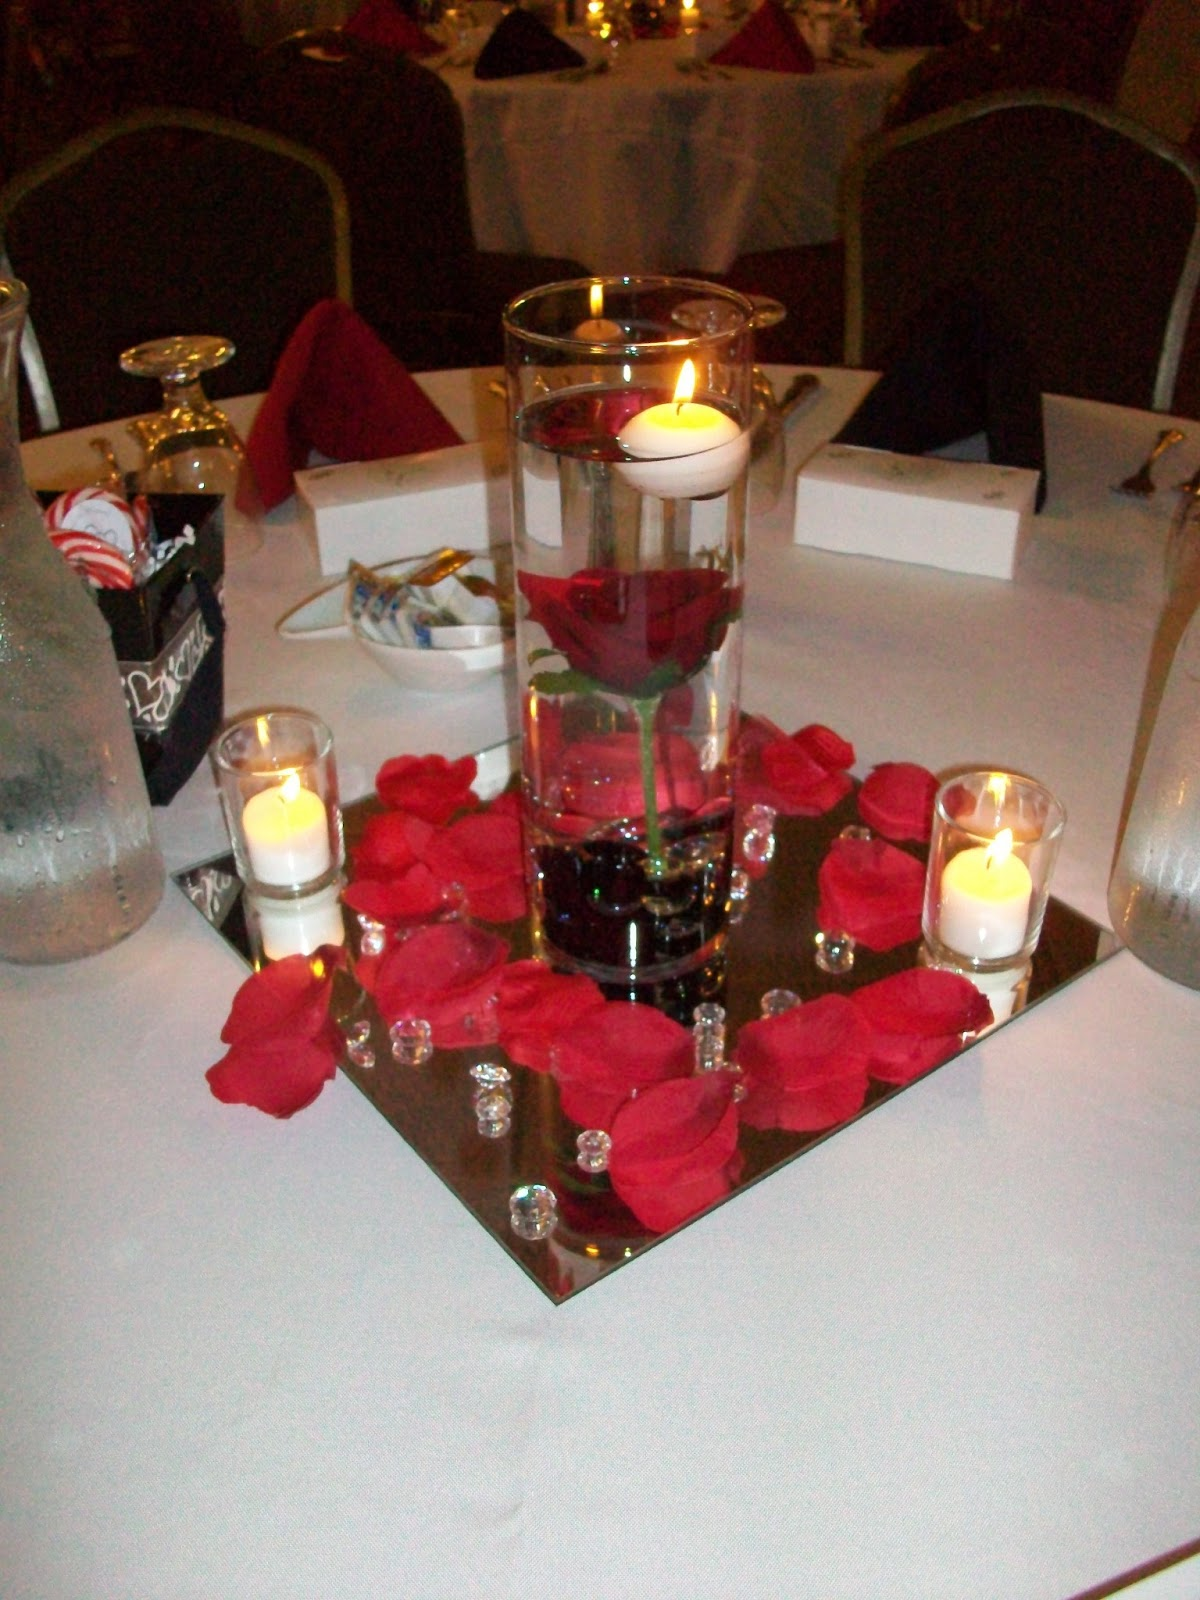 Vase Table Centerpiece Ideas emiliesbeauty